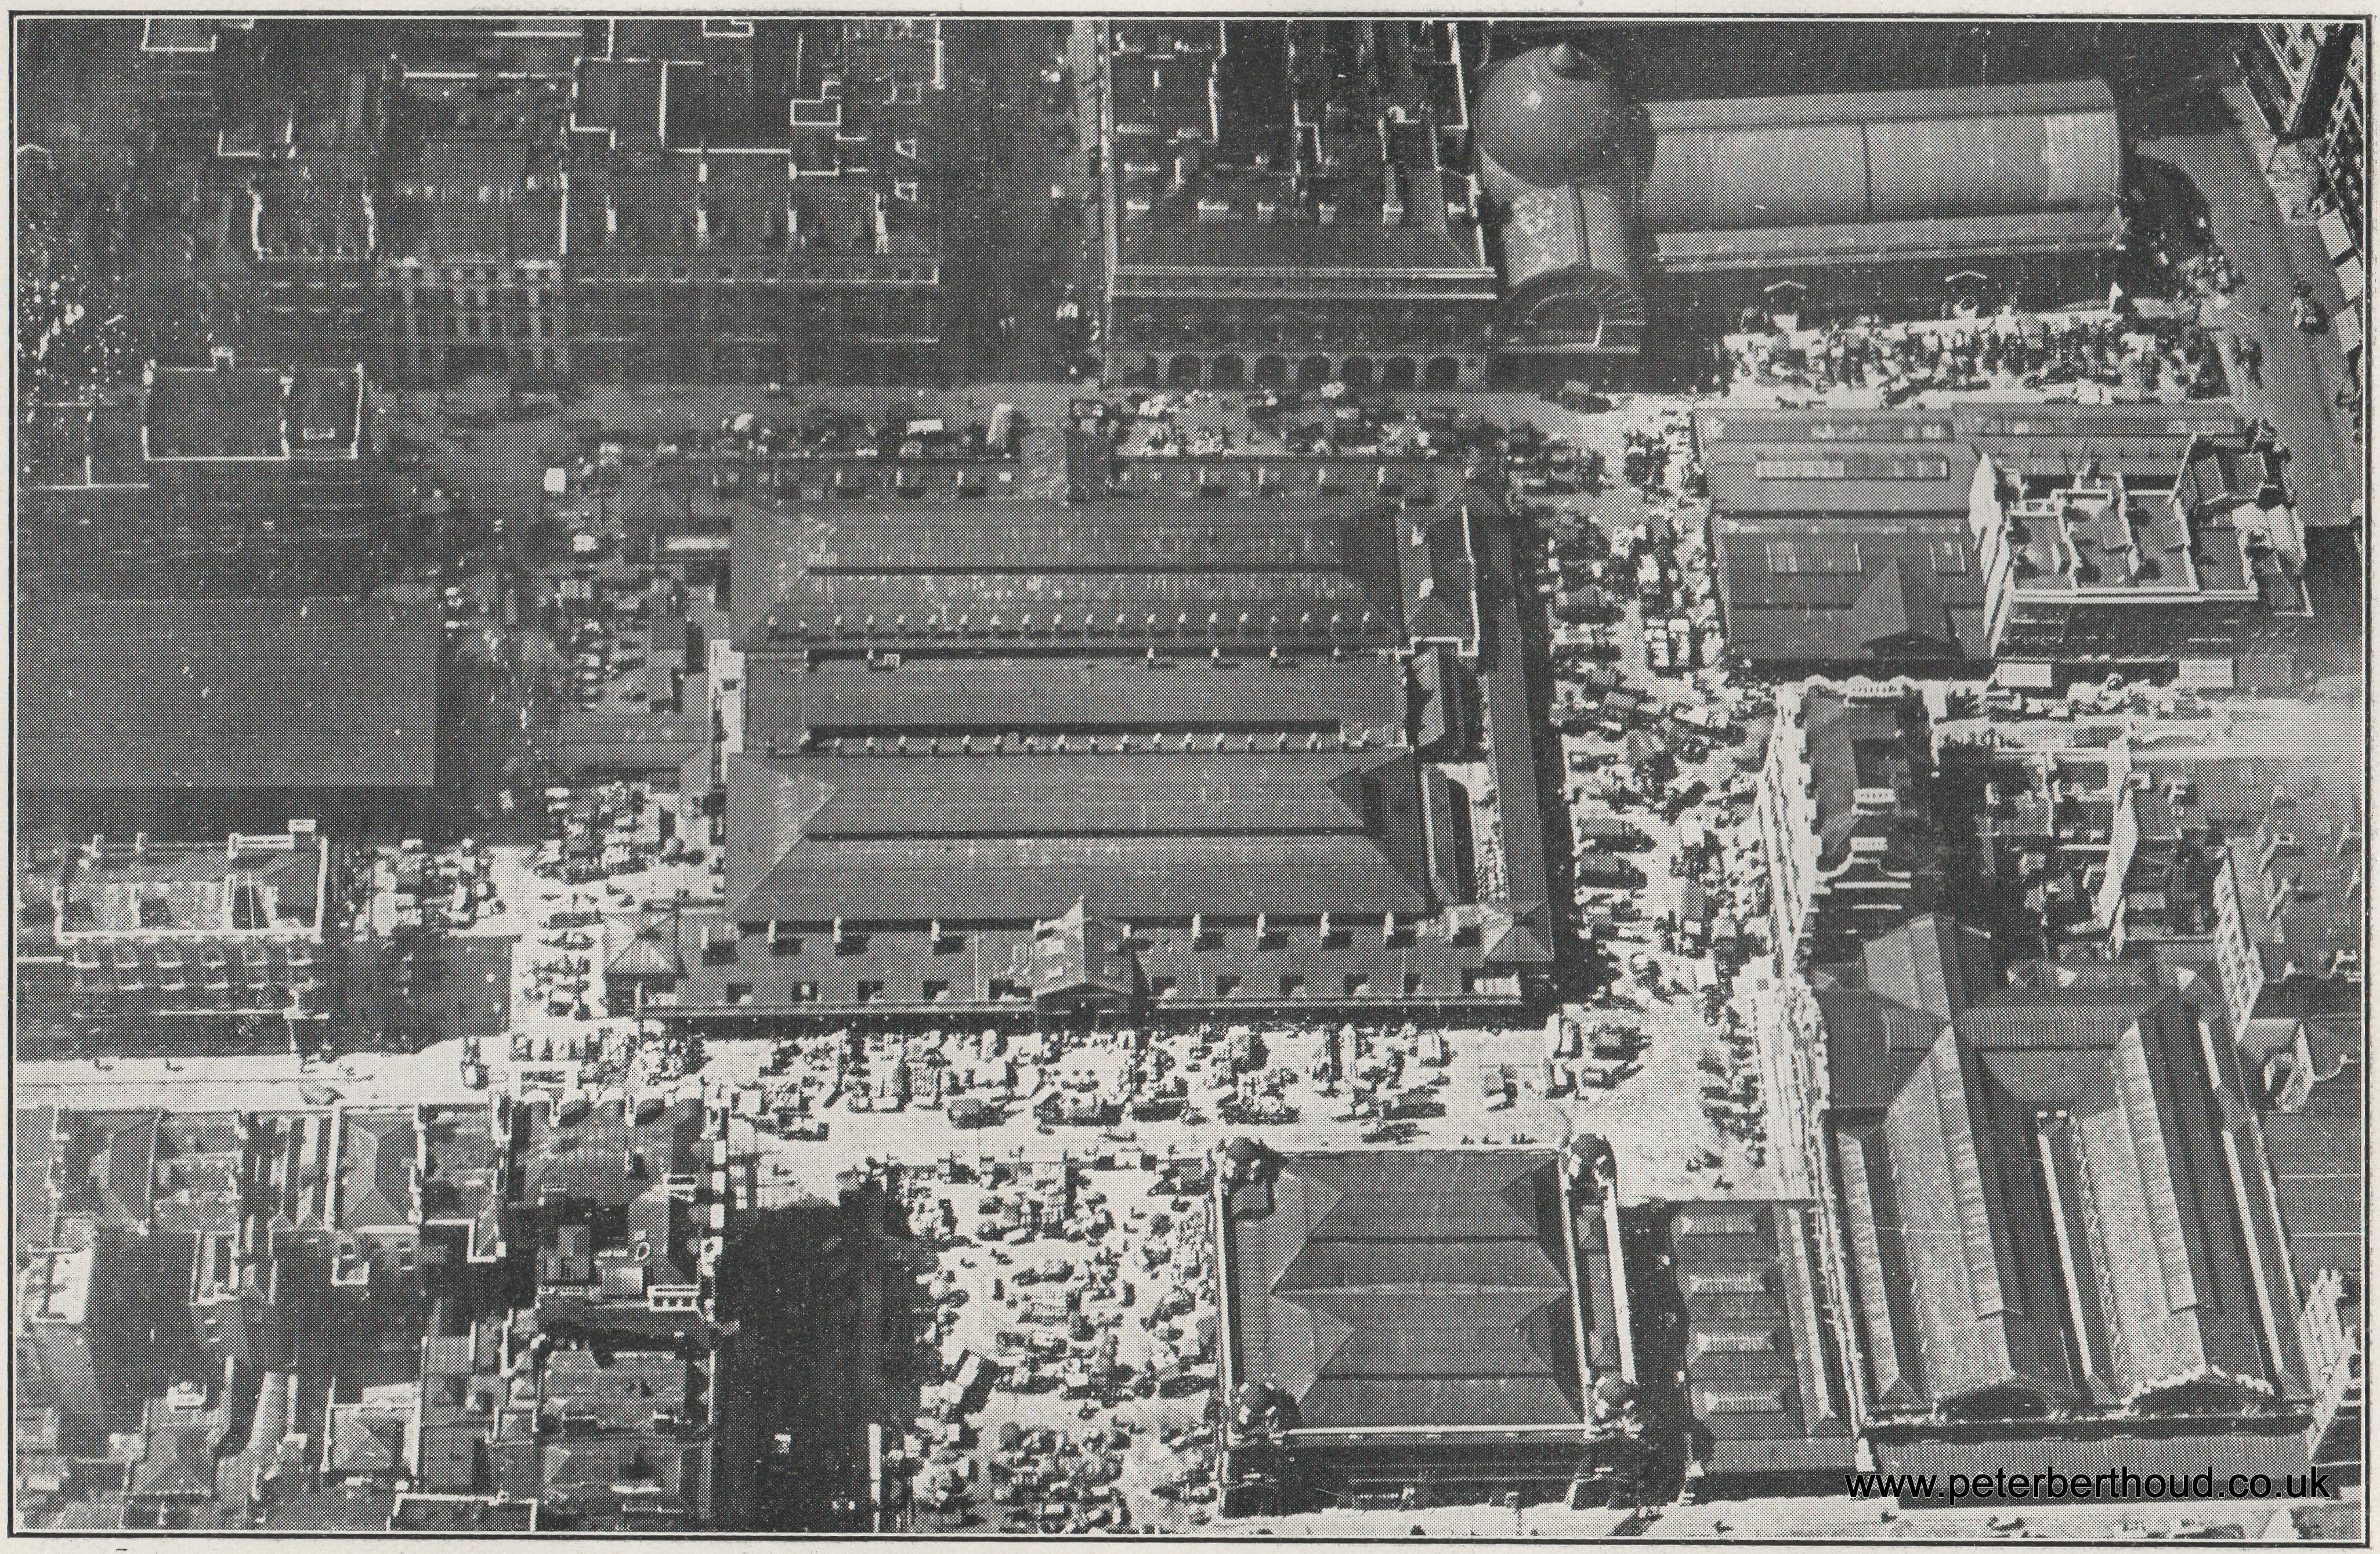 Aerial View of Covent Garden Market (1930)